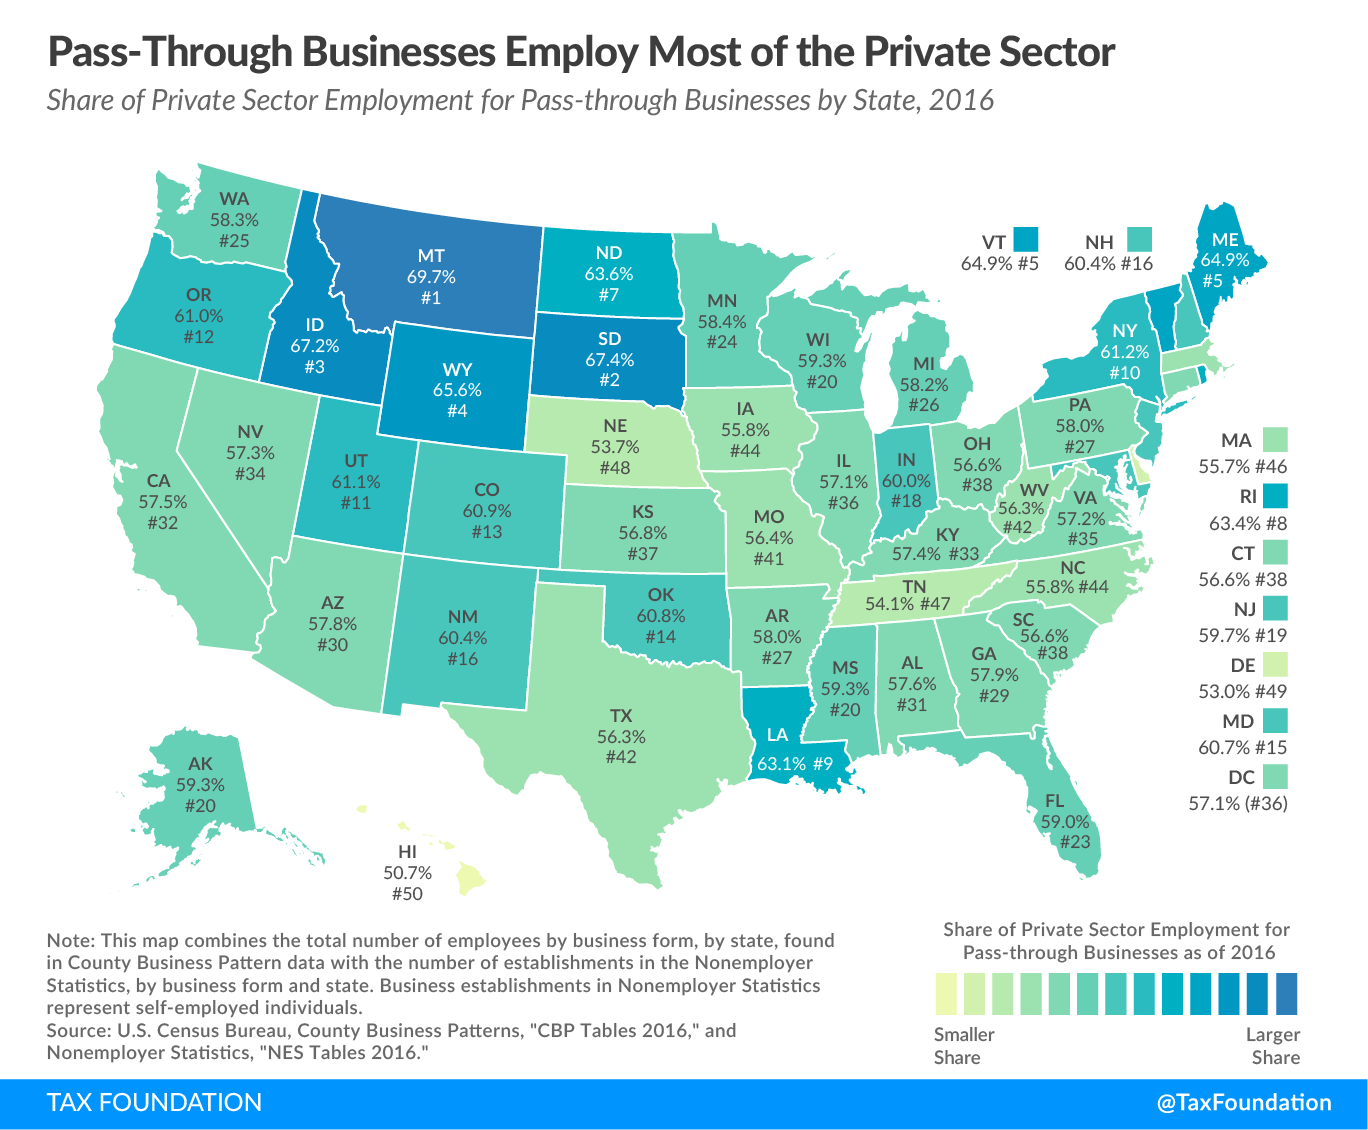 pass-through businesses employ most of the private sector pass through business share of private sector employment, pass-through business tax